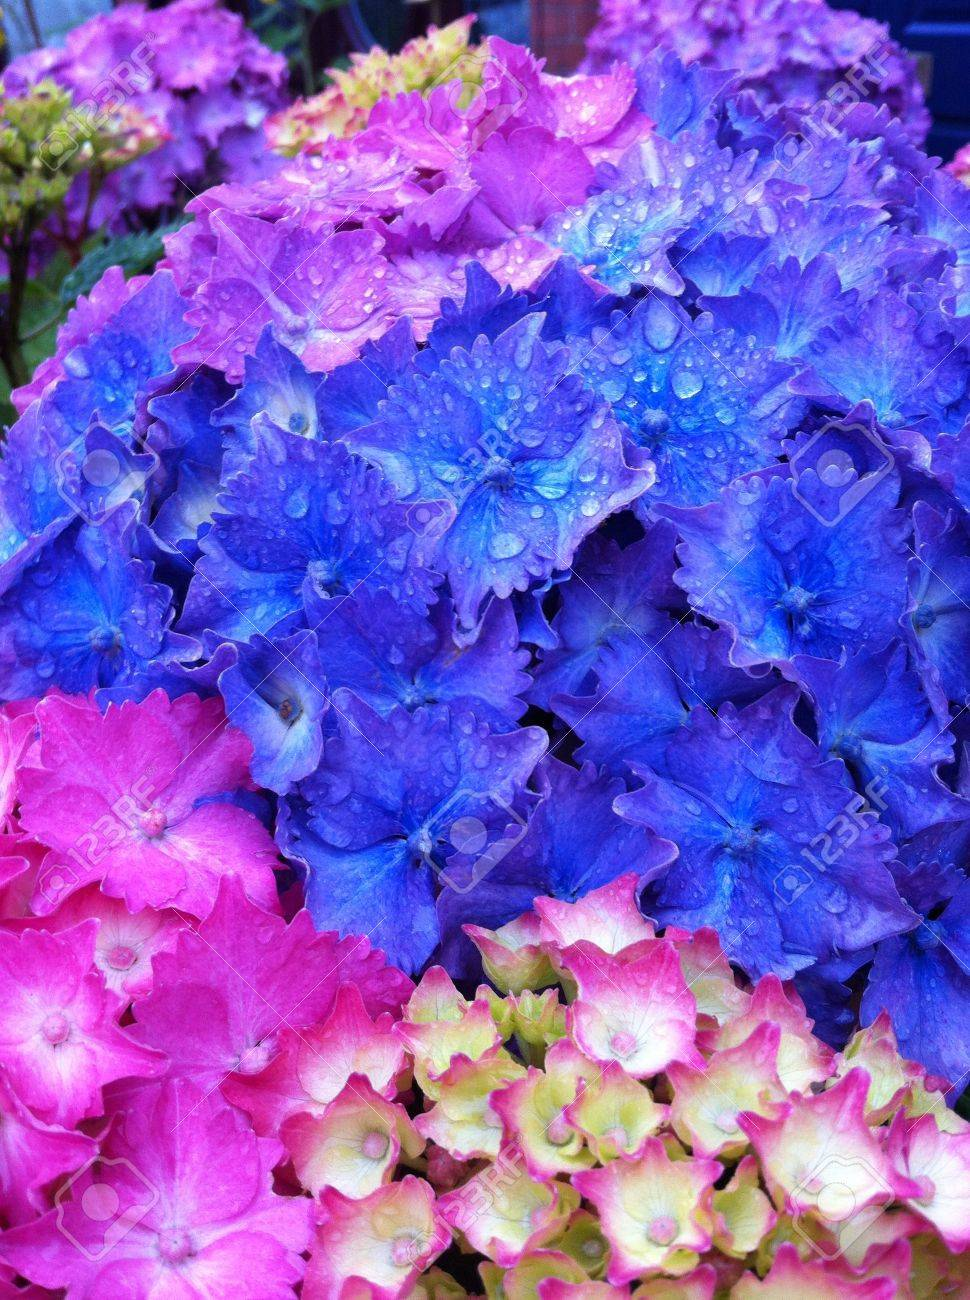 Blue purple and pink hydrangea flowers after a summer rain shower blue purple and pink hydrangea flowers after a summer rain shower stock photo 20513263 mightylinksfo